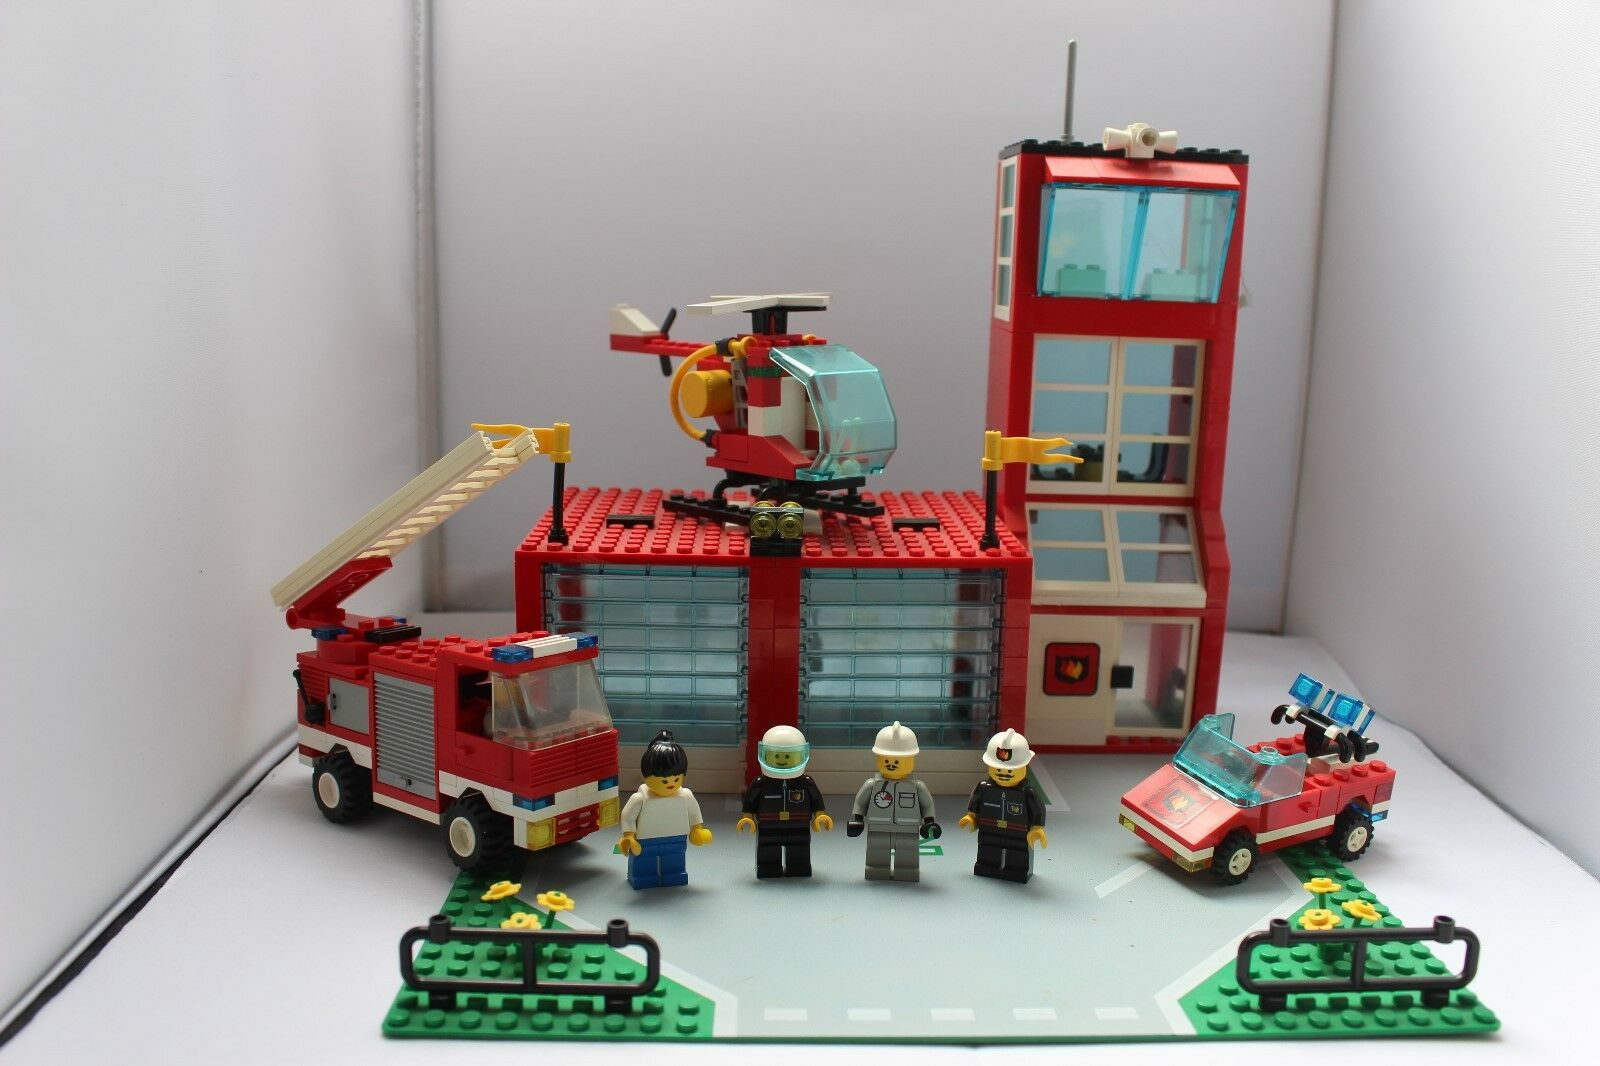 LEGO System 6571 Flame Fighter Fire Station Bauanleitung  Verpackung OVP